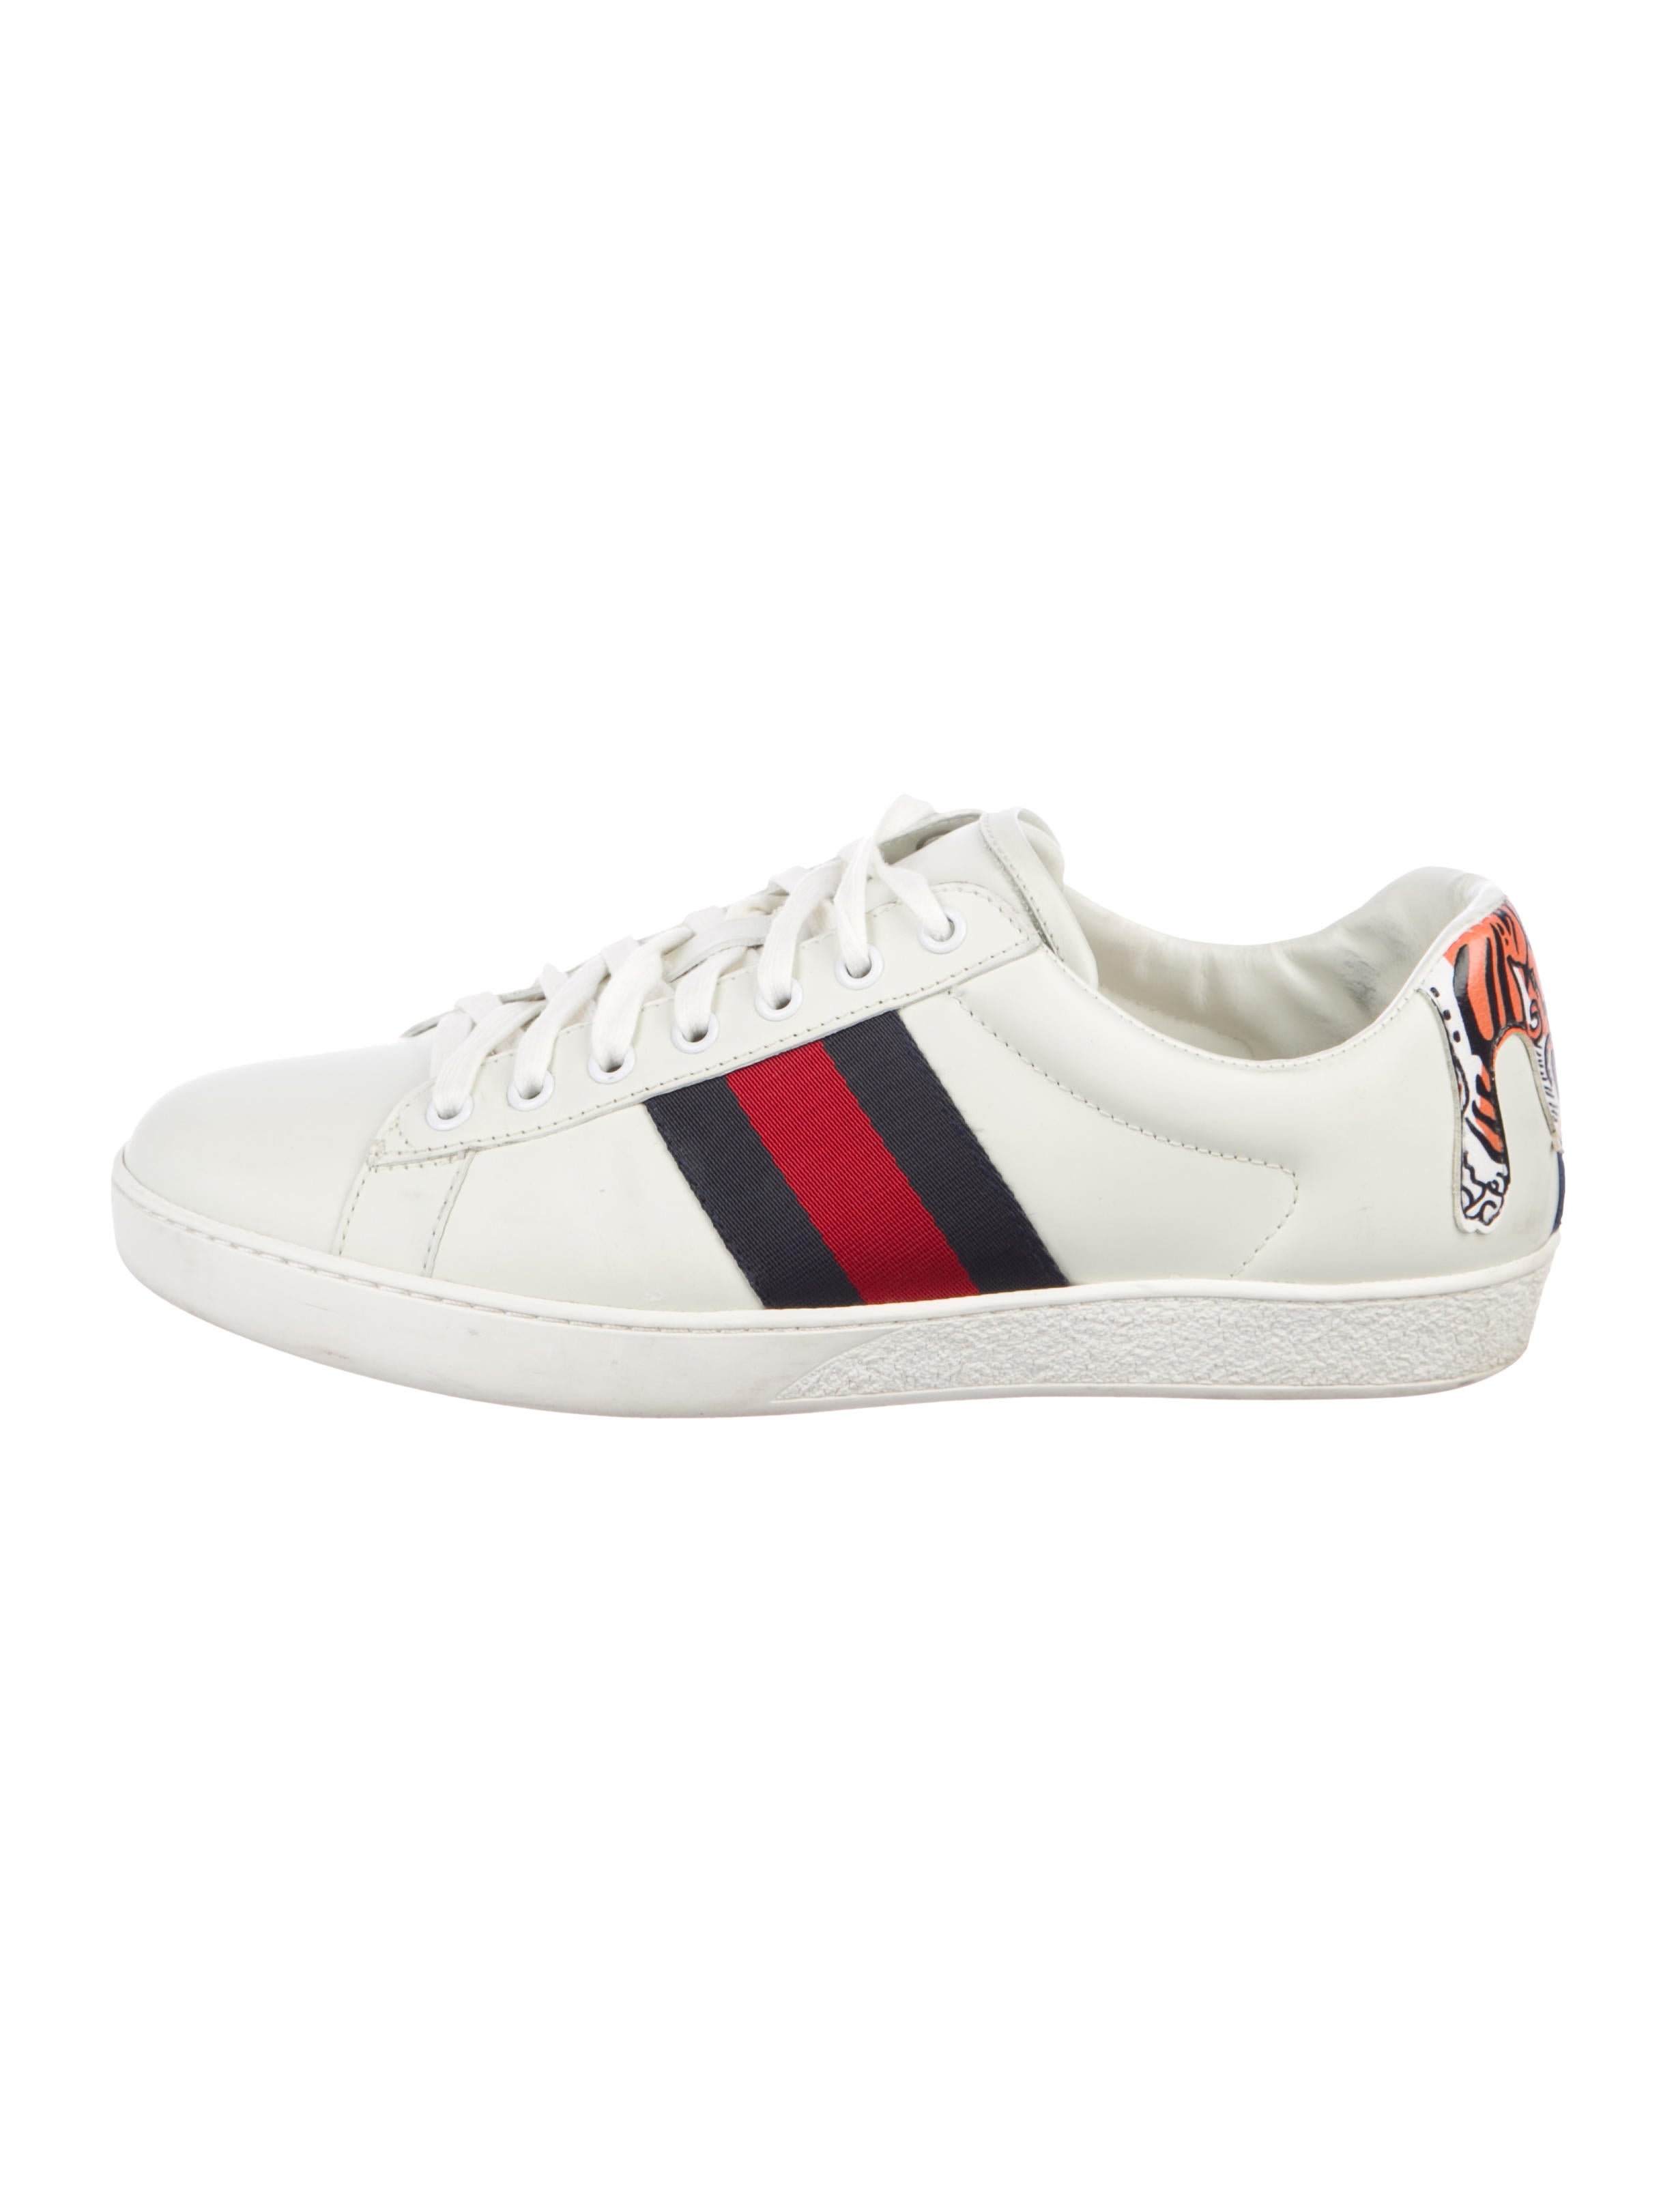 8d2bdbfcc06 Gucci Ace Tiger Low-Top Sneakers - Shoes - GUC267374